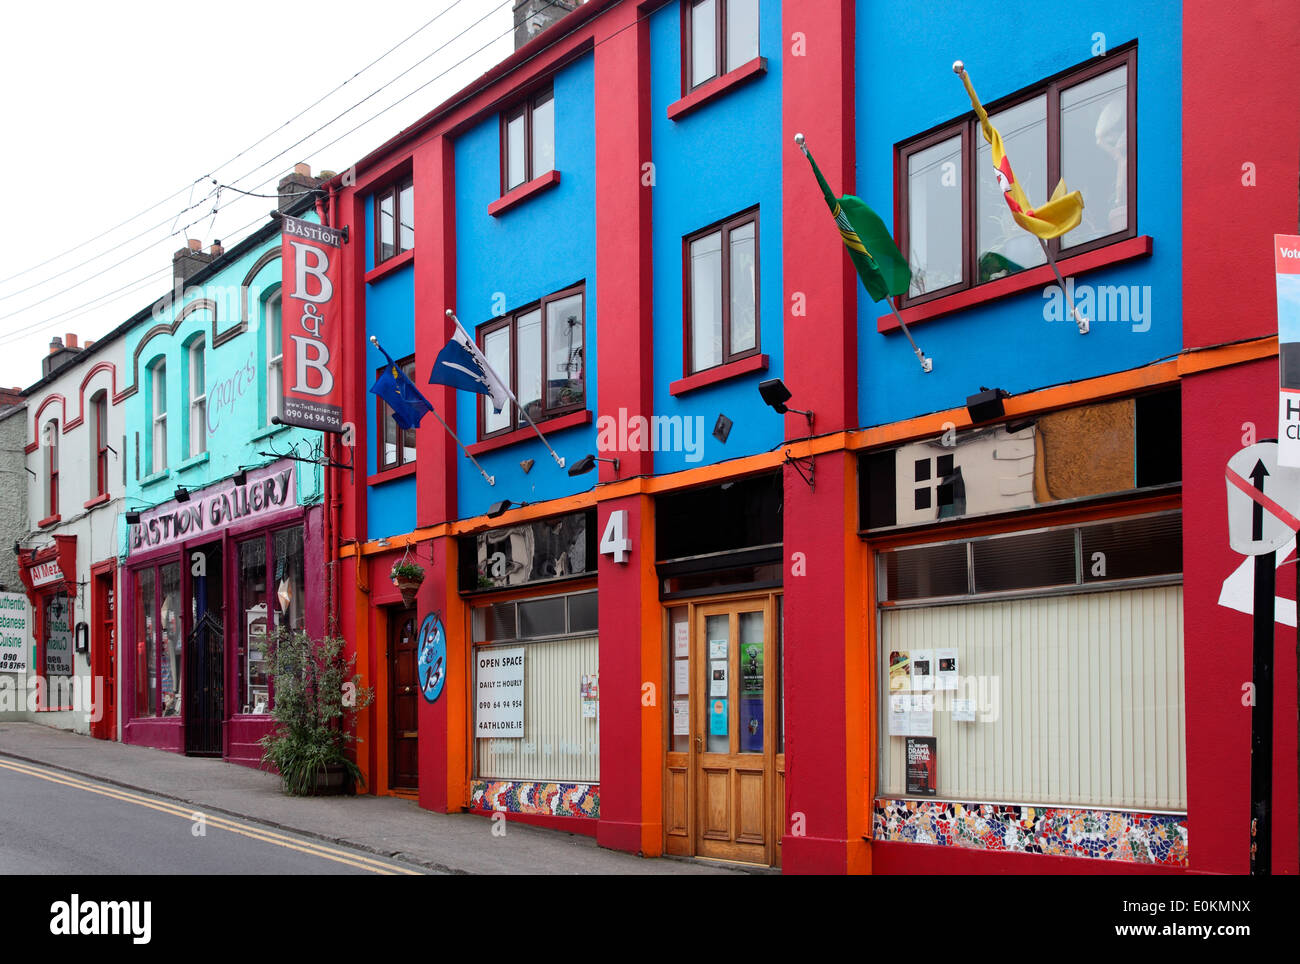 Athlone streetscape showing typical coloured shopfronts - Stock Image